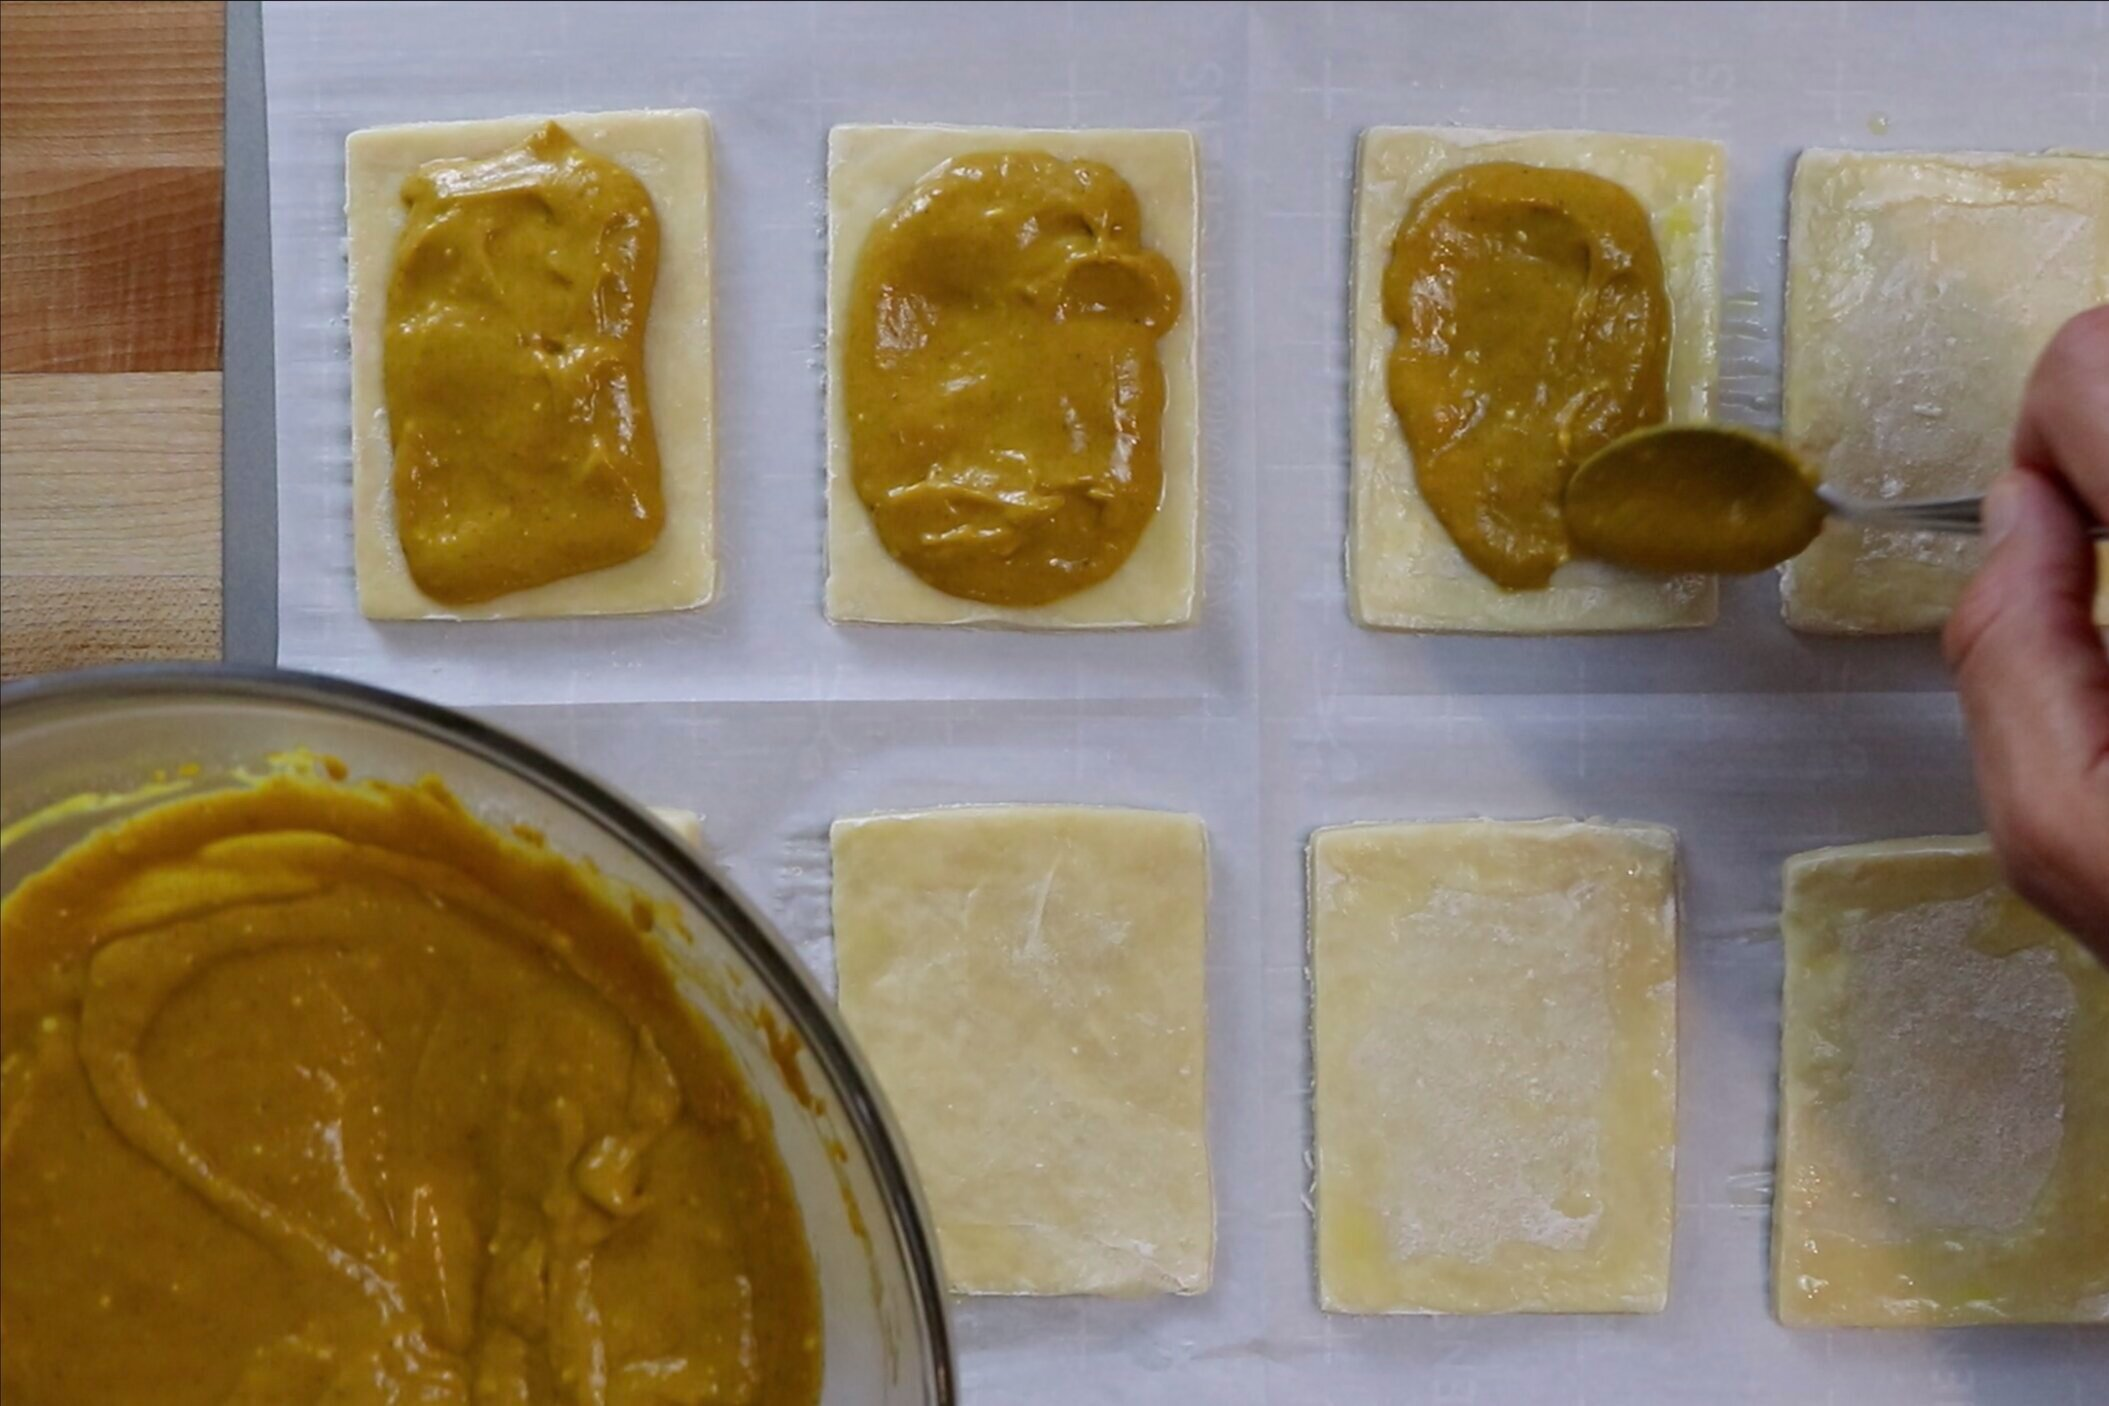 6. Scoop around 2 tablespoons of the pumpkin filling in the middle of each rectangle. Spread pumpkin evenly leaving space around the border. -